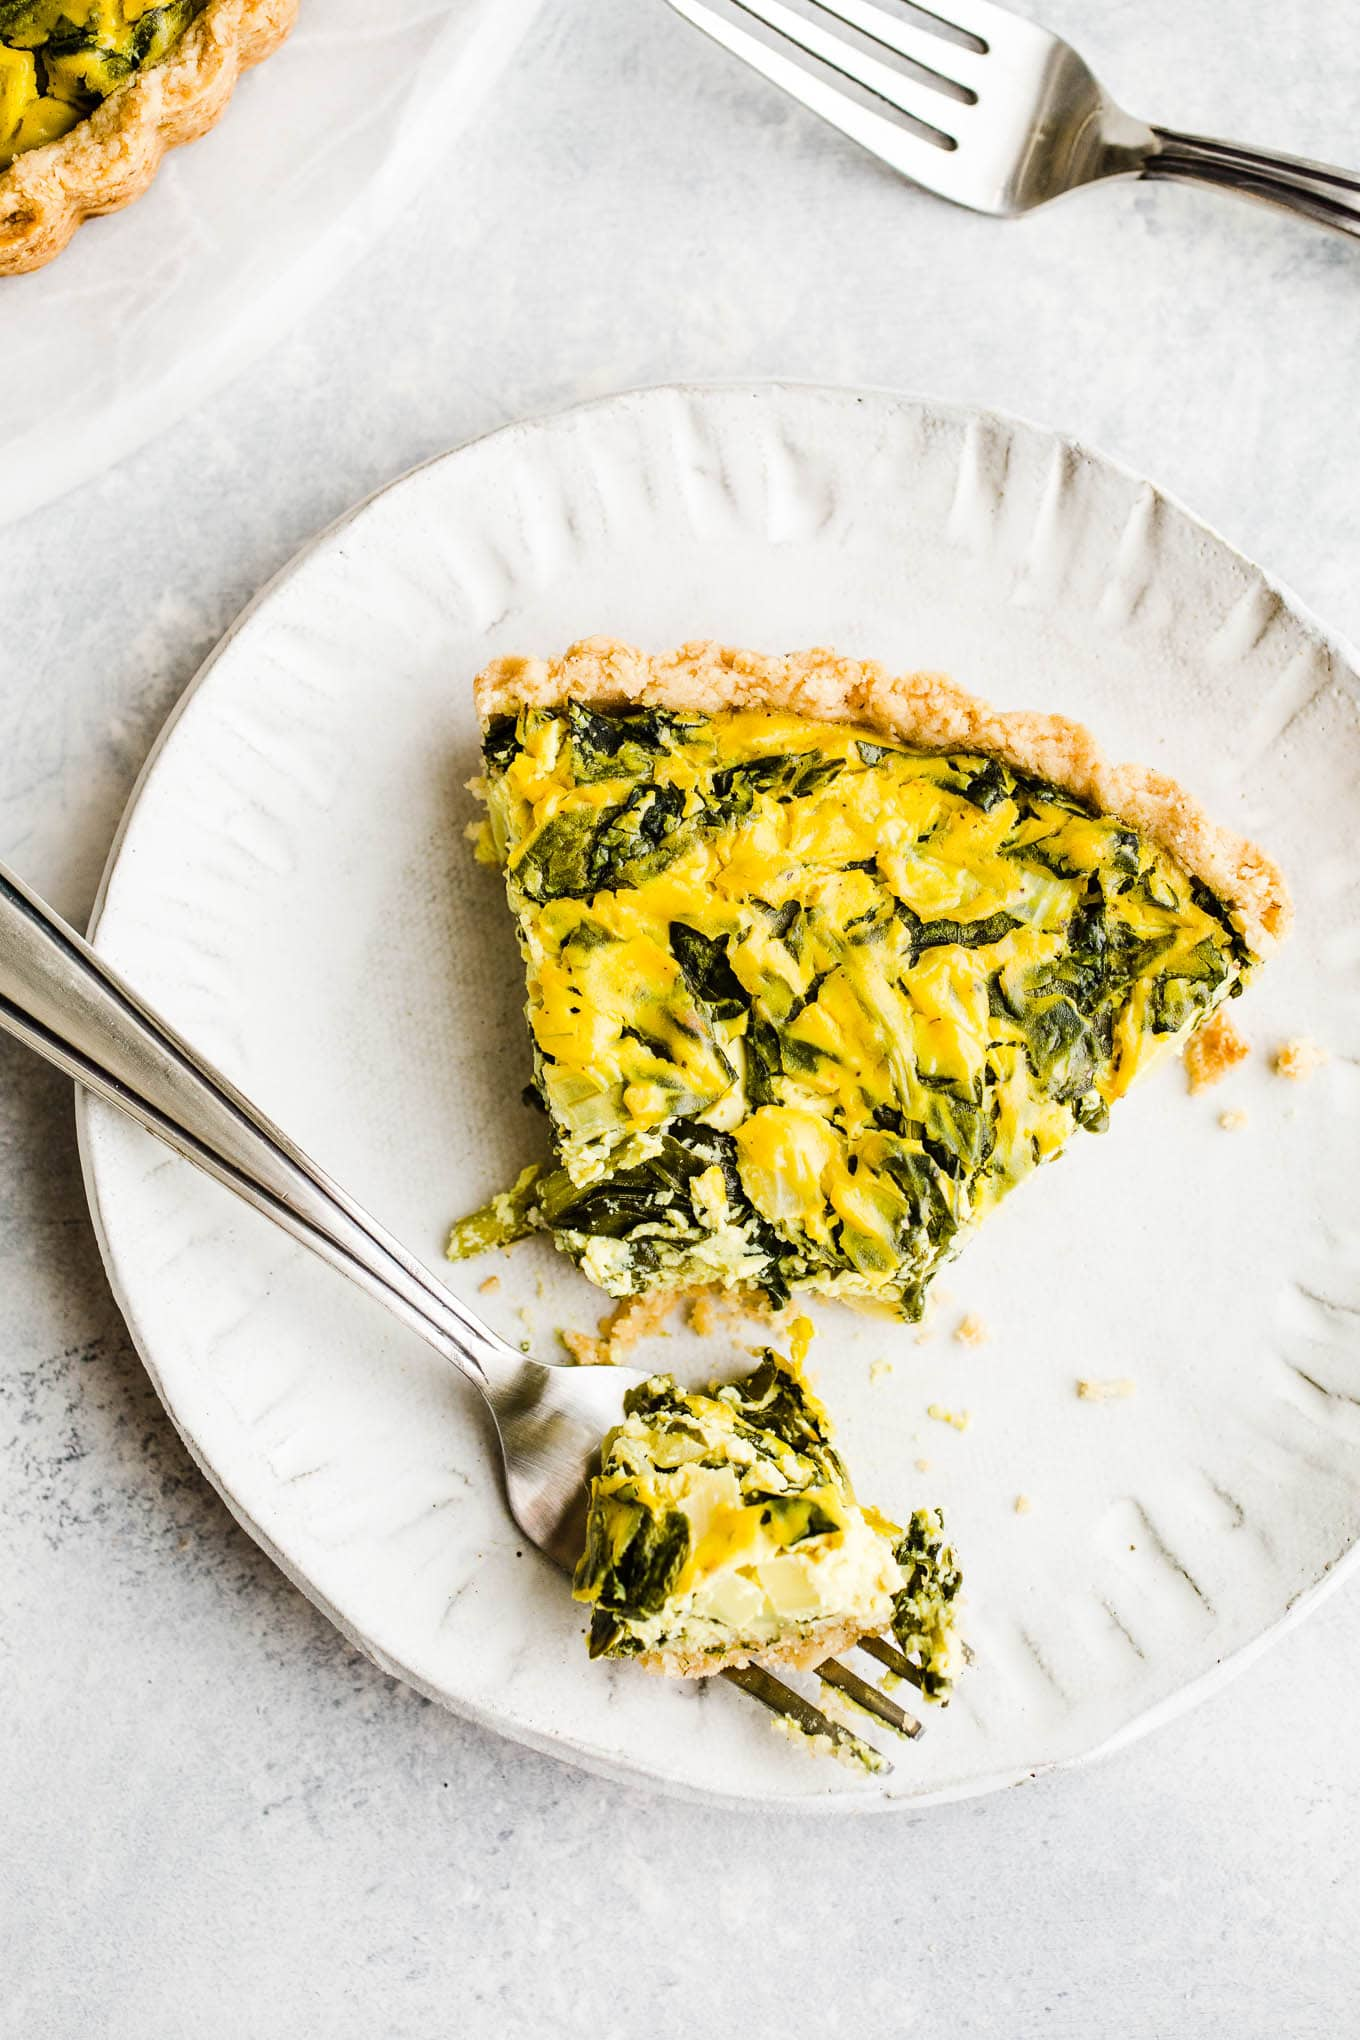 vegetarian quiche on plate with fork